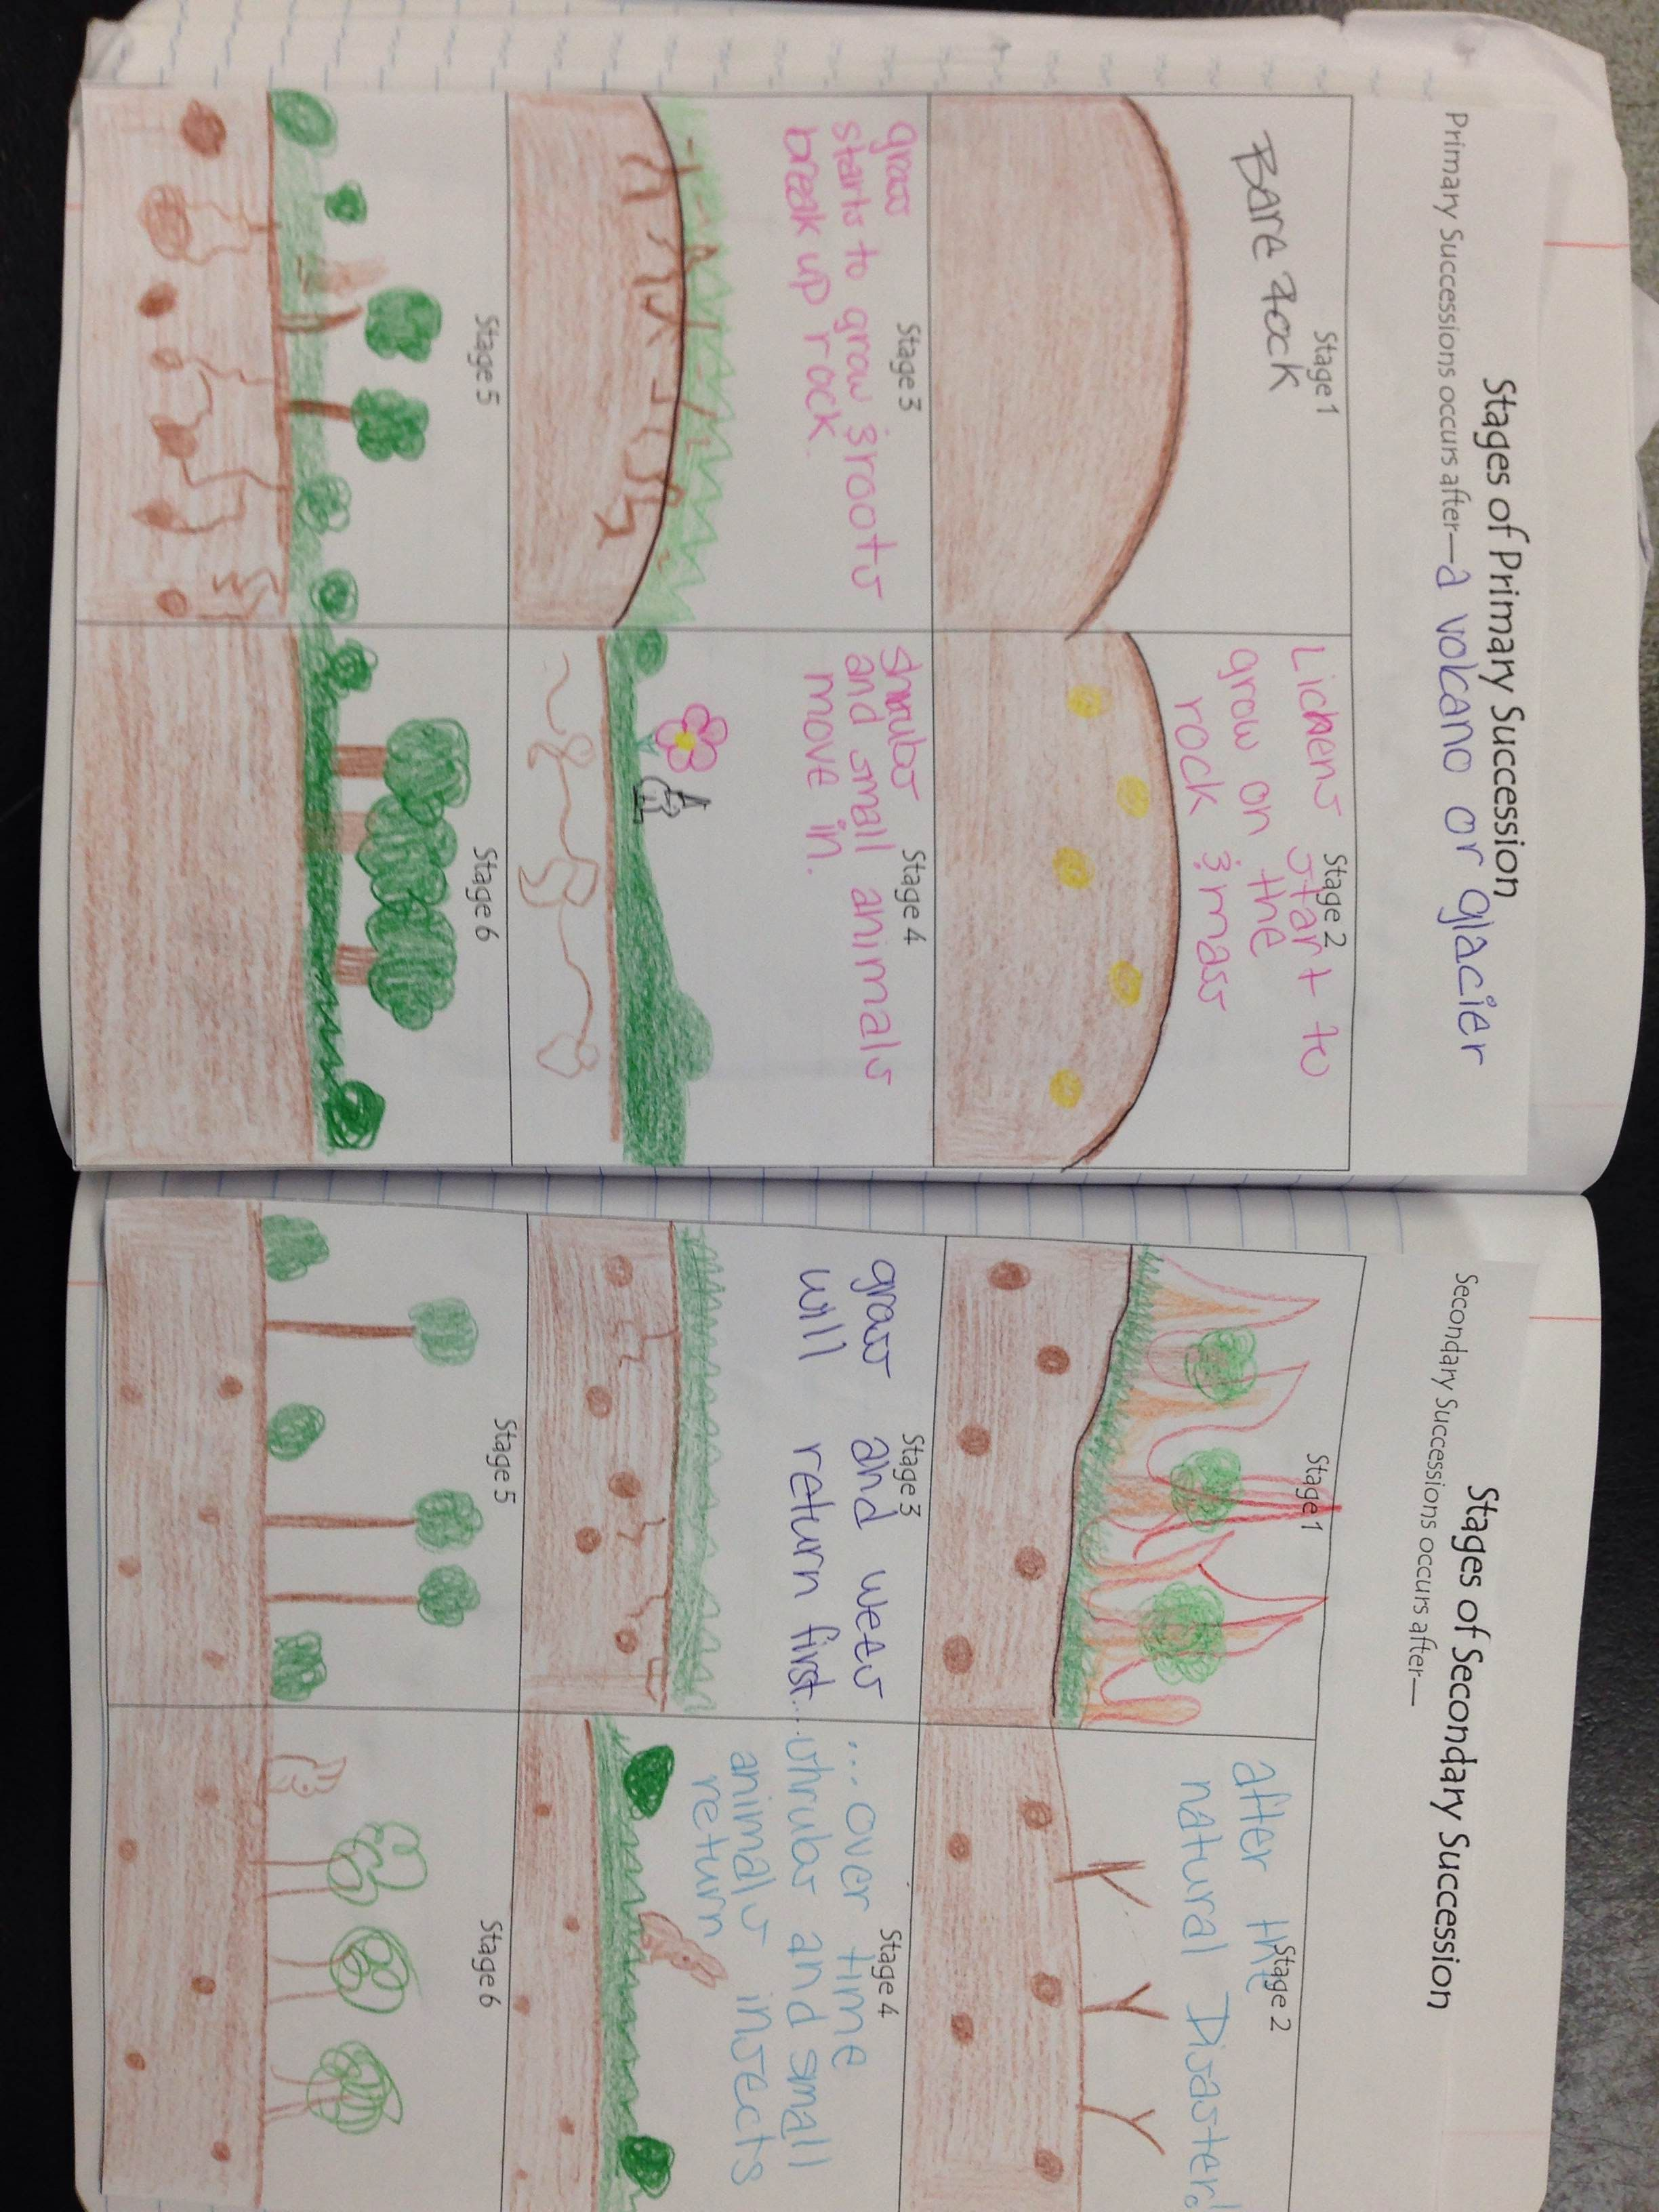 Secondary Succession Diagram